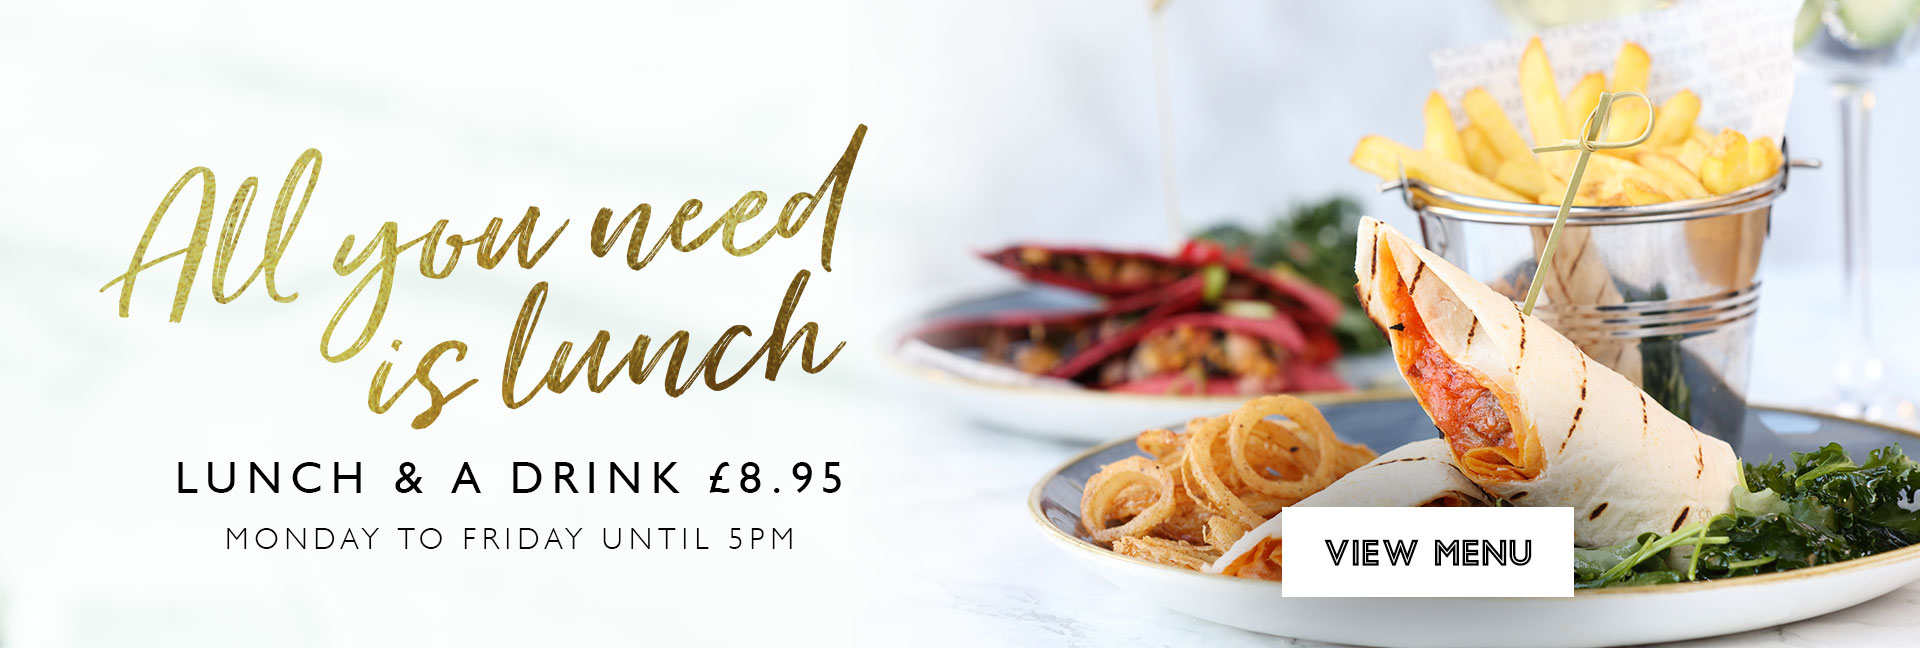 Lunch Offer at All Bar One Liverpool